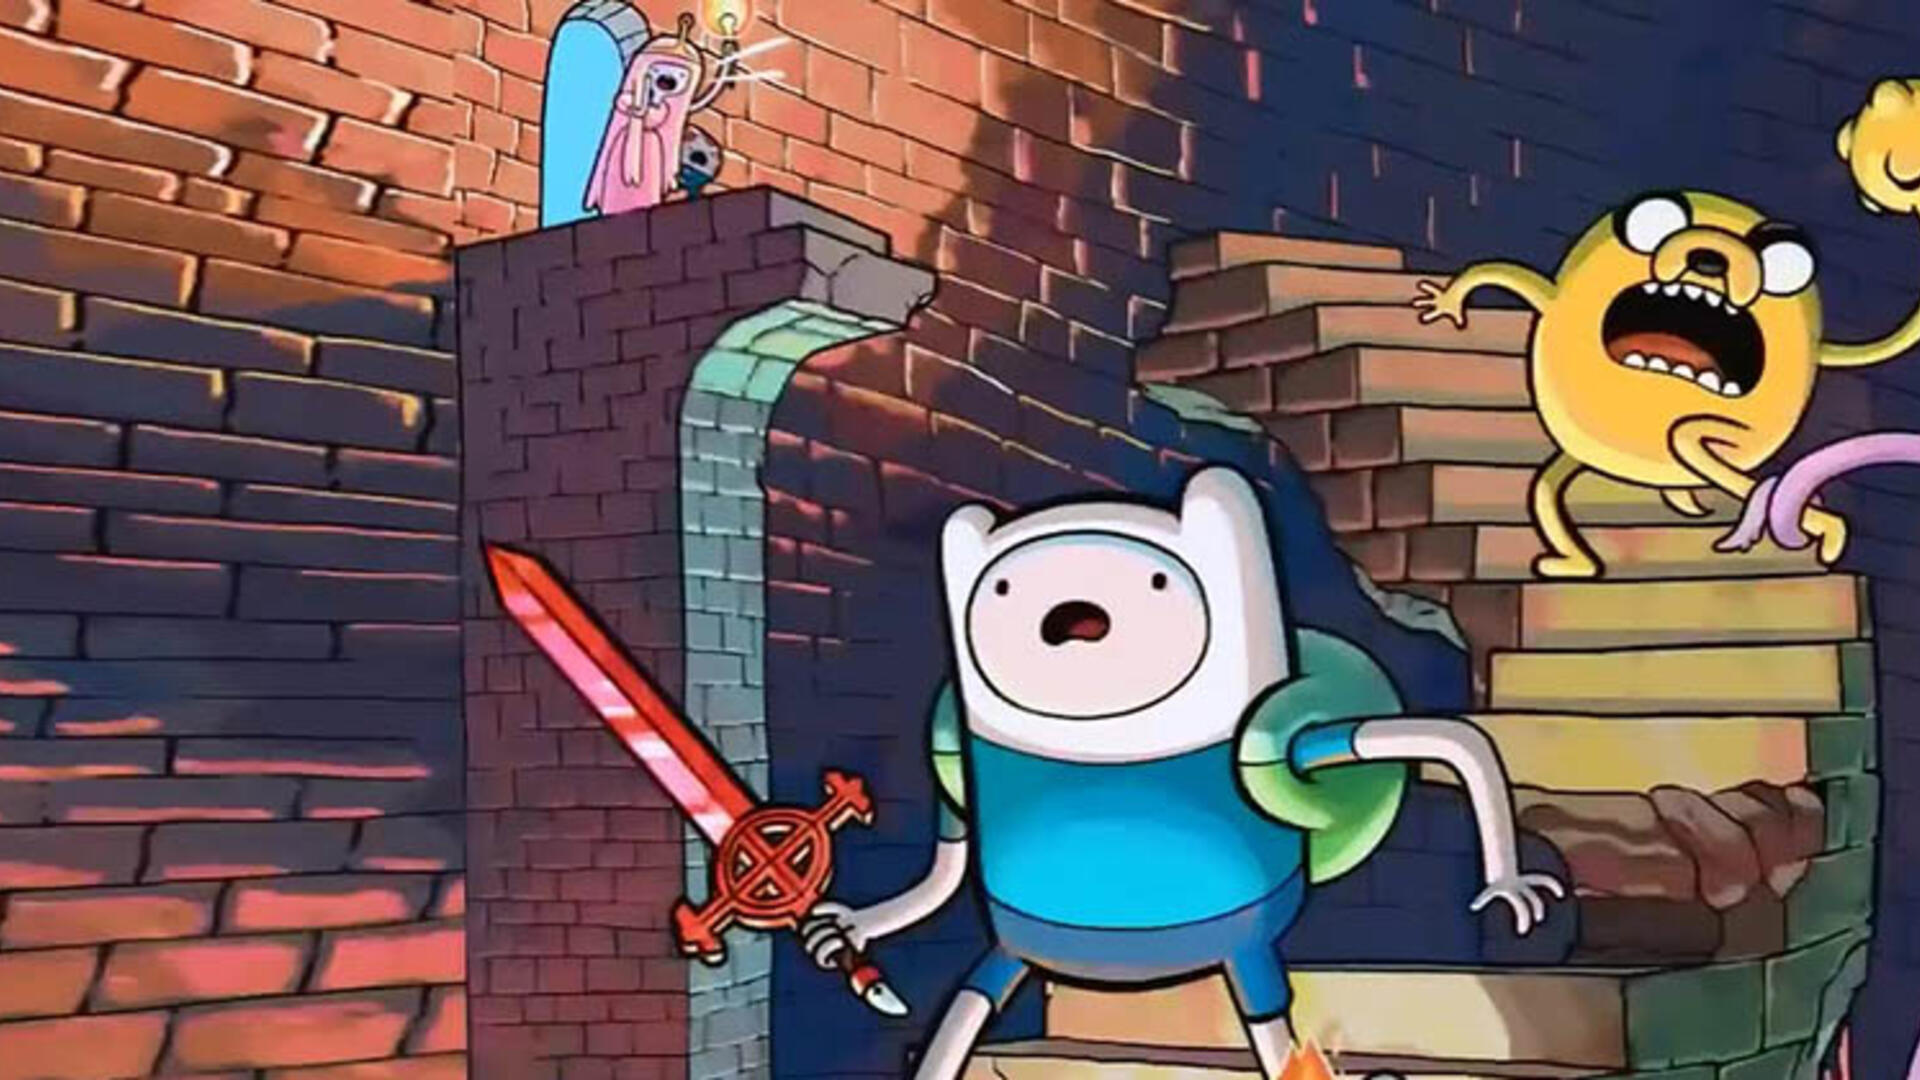 Adventure Time: Explore the Dungeon Because I DON'T KNOW Wii U Review